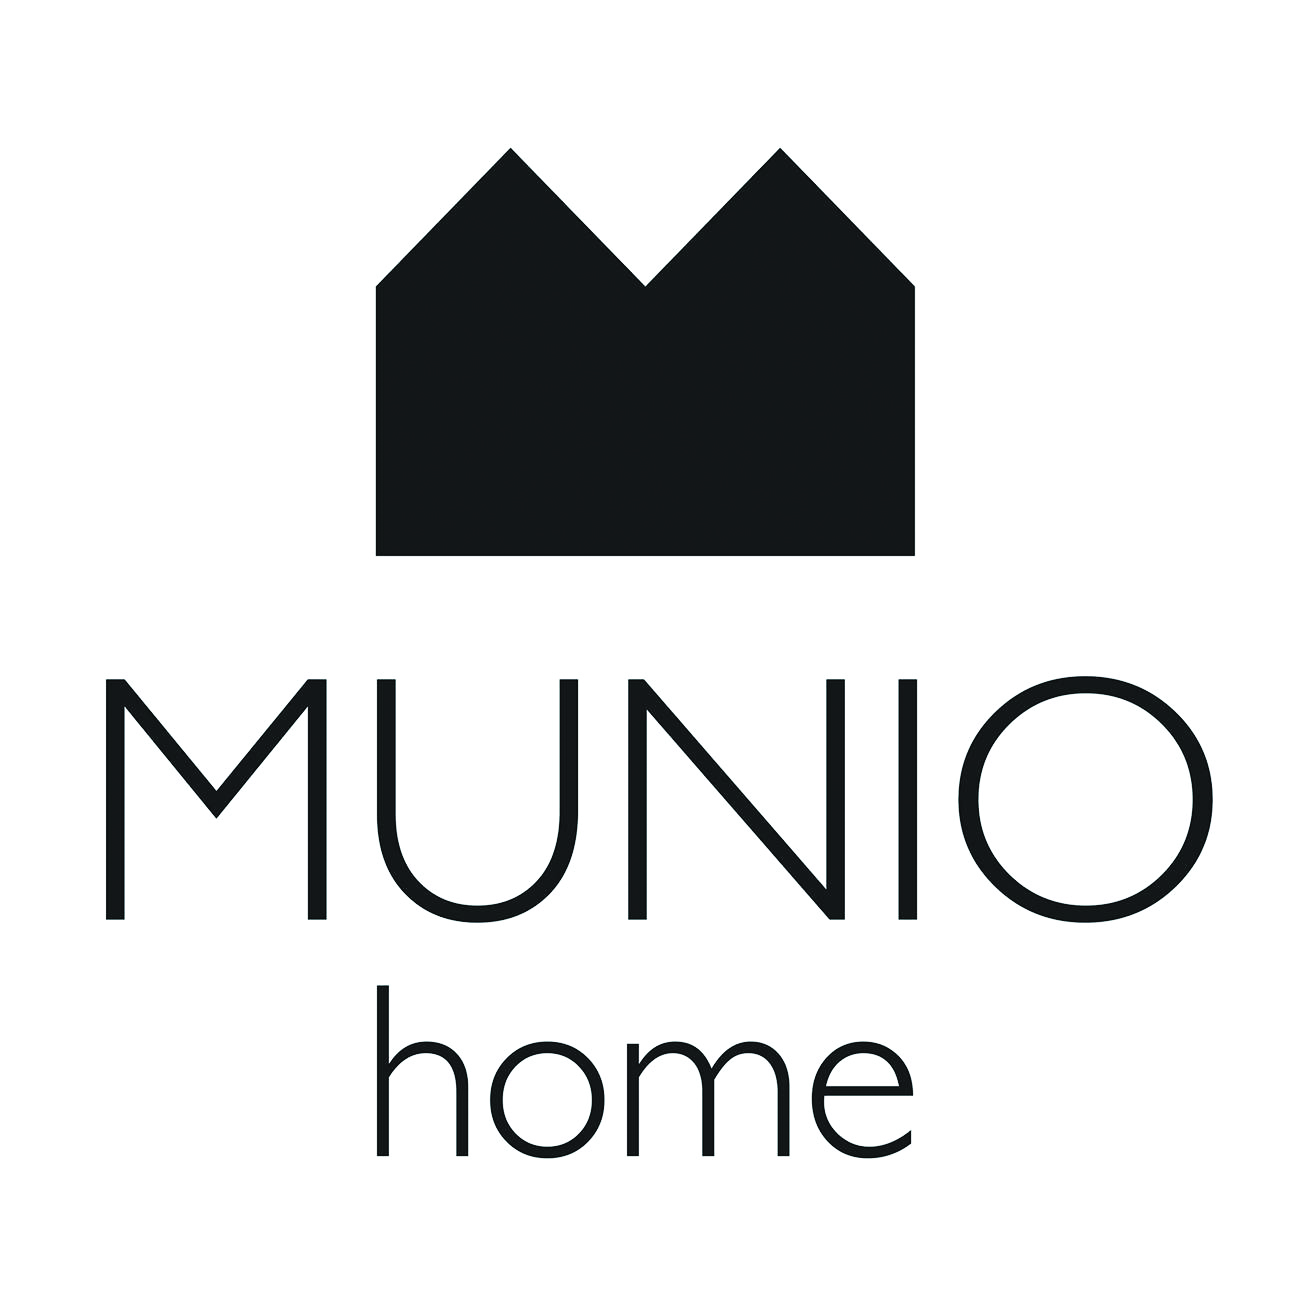 logo_munio-home-jpg-1